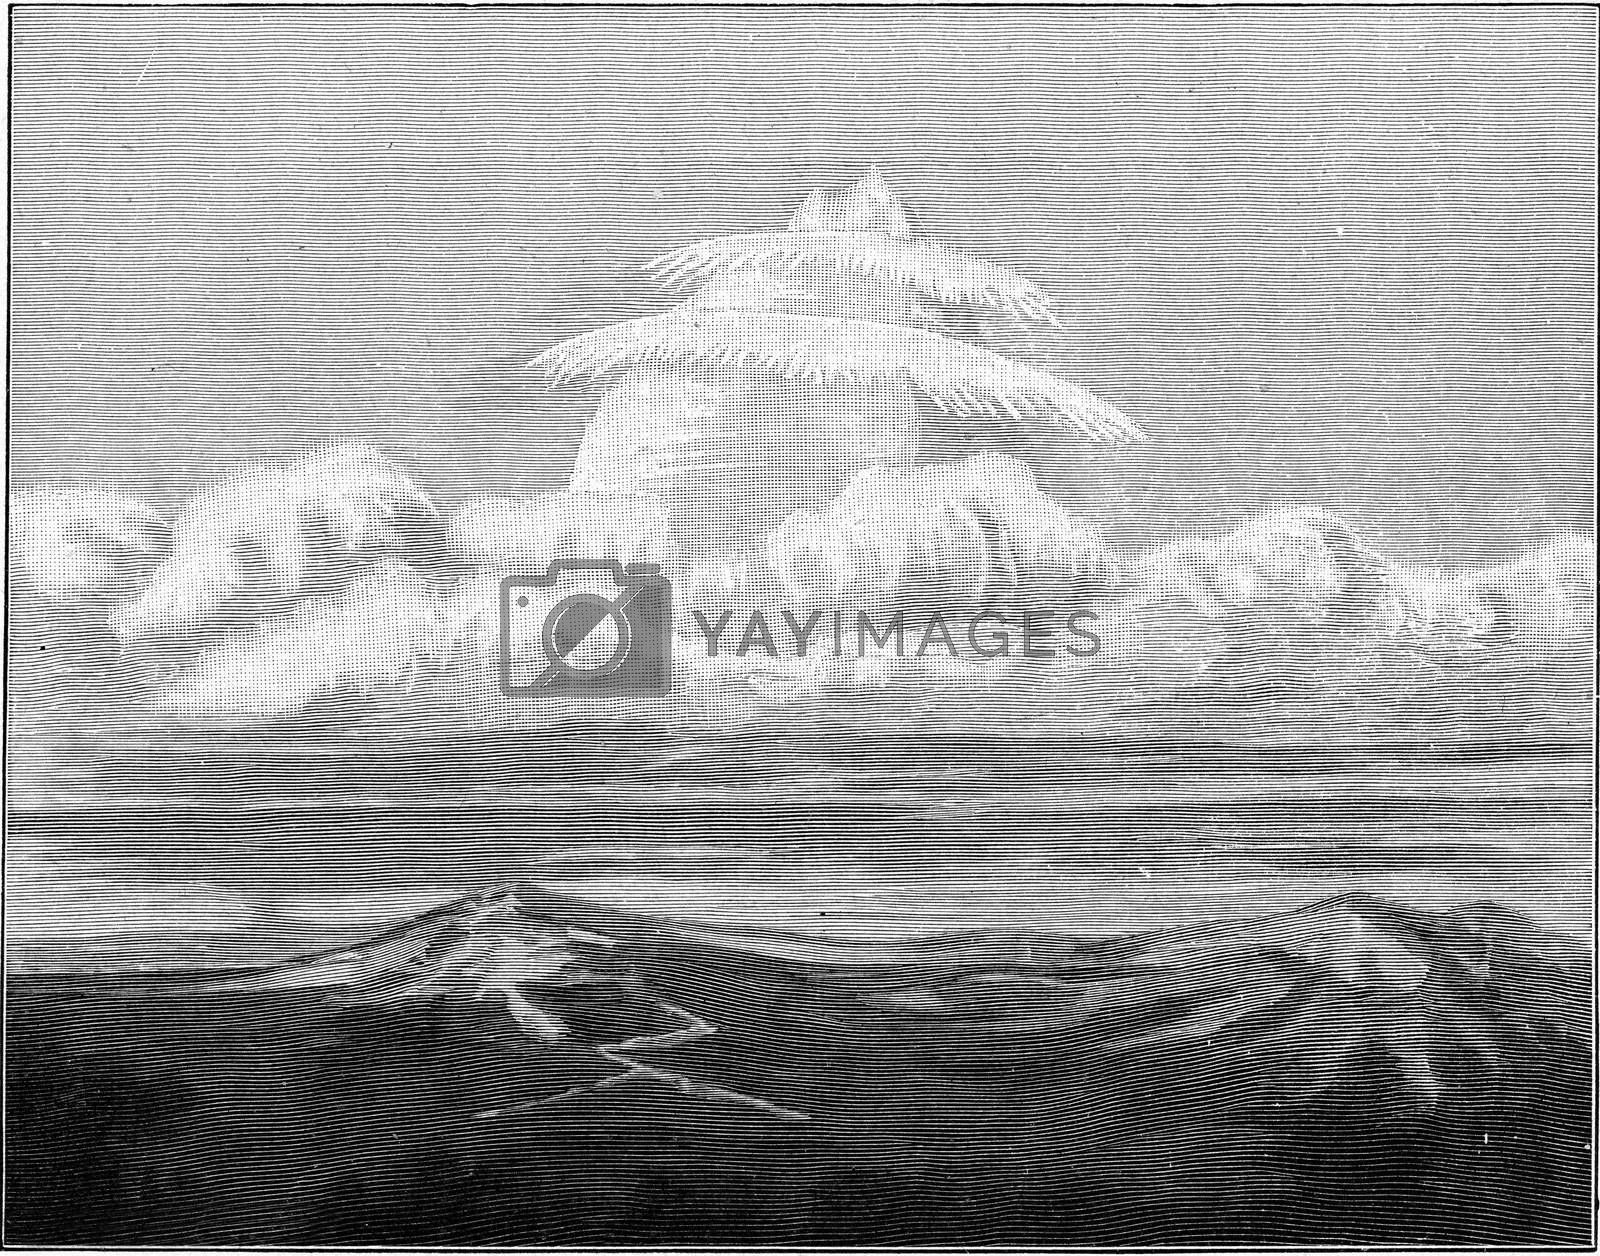 Hail cloud over the Julian Alps observed in Venice on April 27, 1895, vintage engraved illustration. From the Universe and Humanity, 1910.